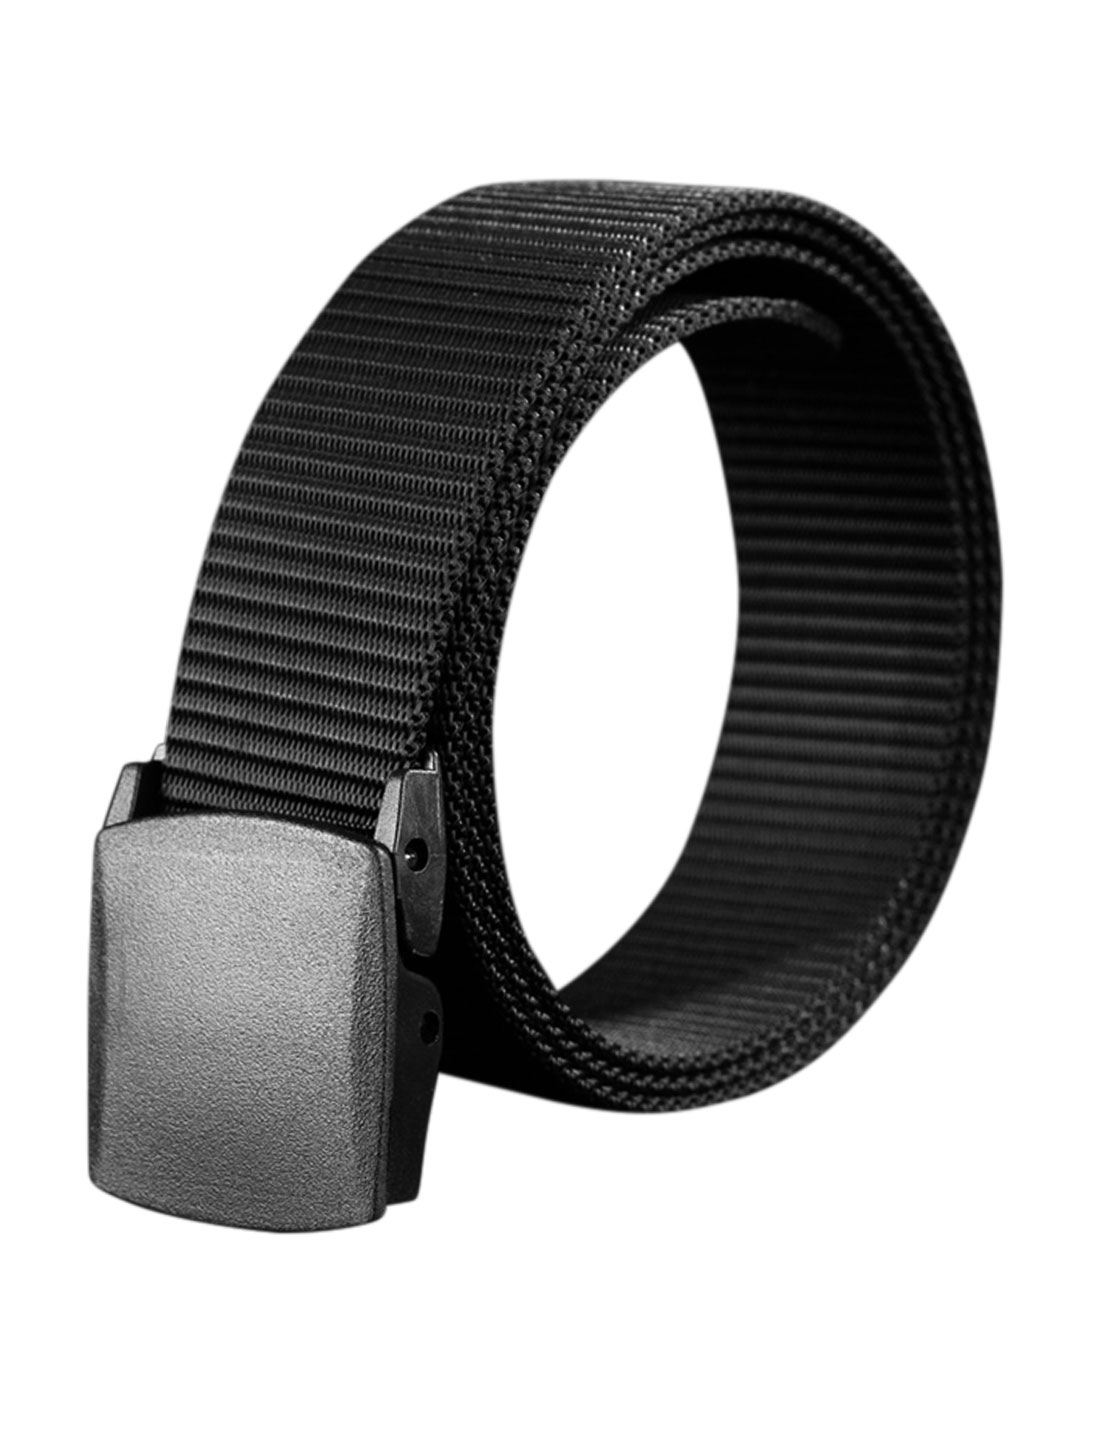 Unisex Plastic Buckle Adjustable Military Canvas Belt Black